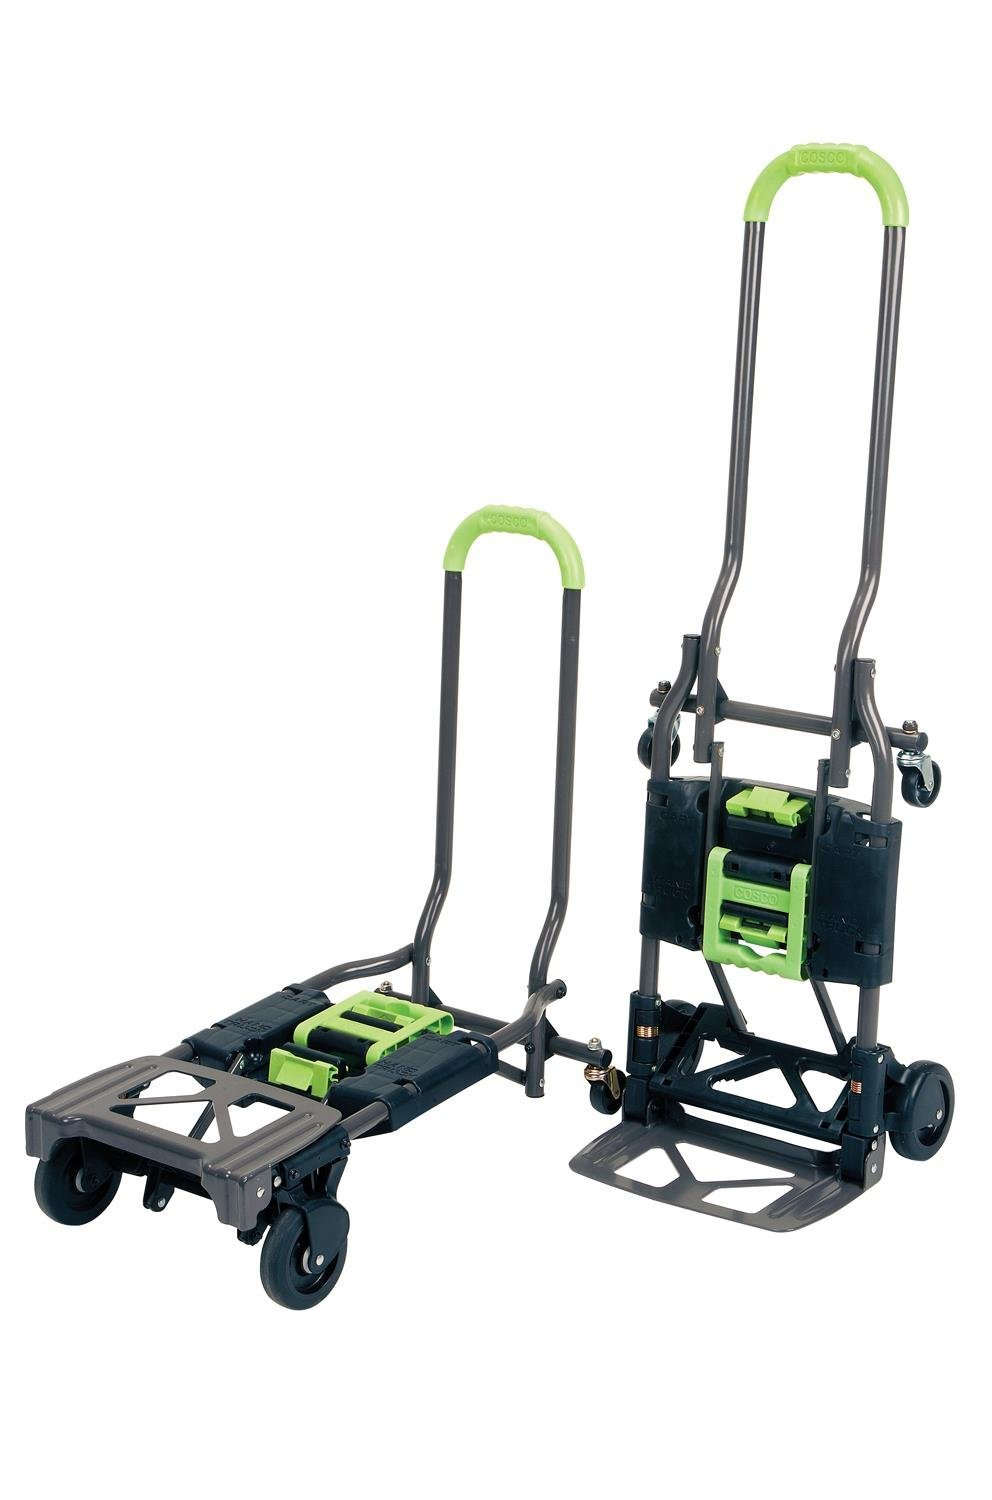 5 Best Selling Hand Trucks In 2018 Reviews And